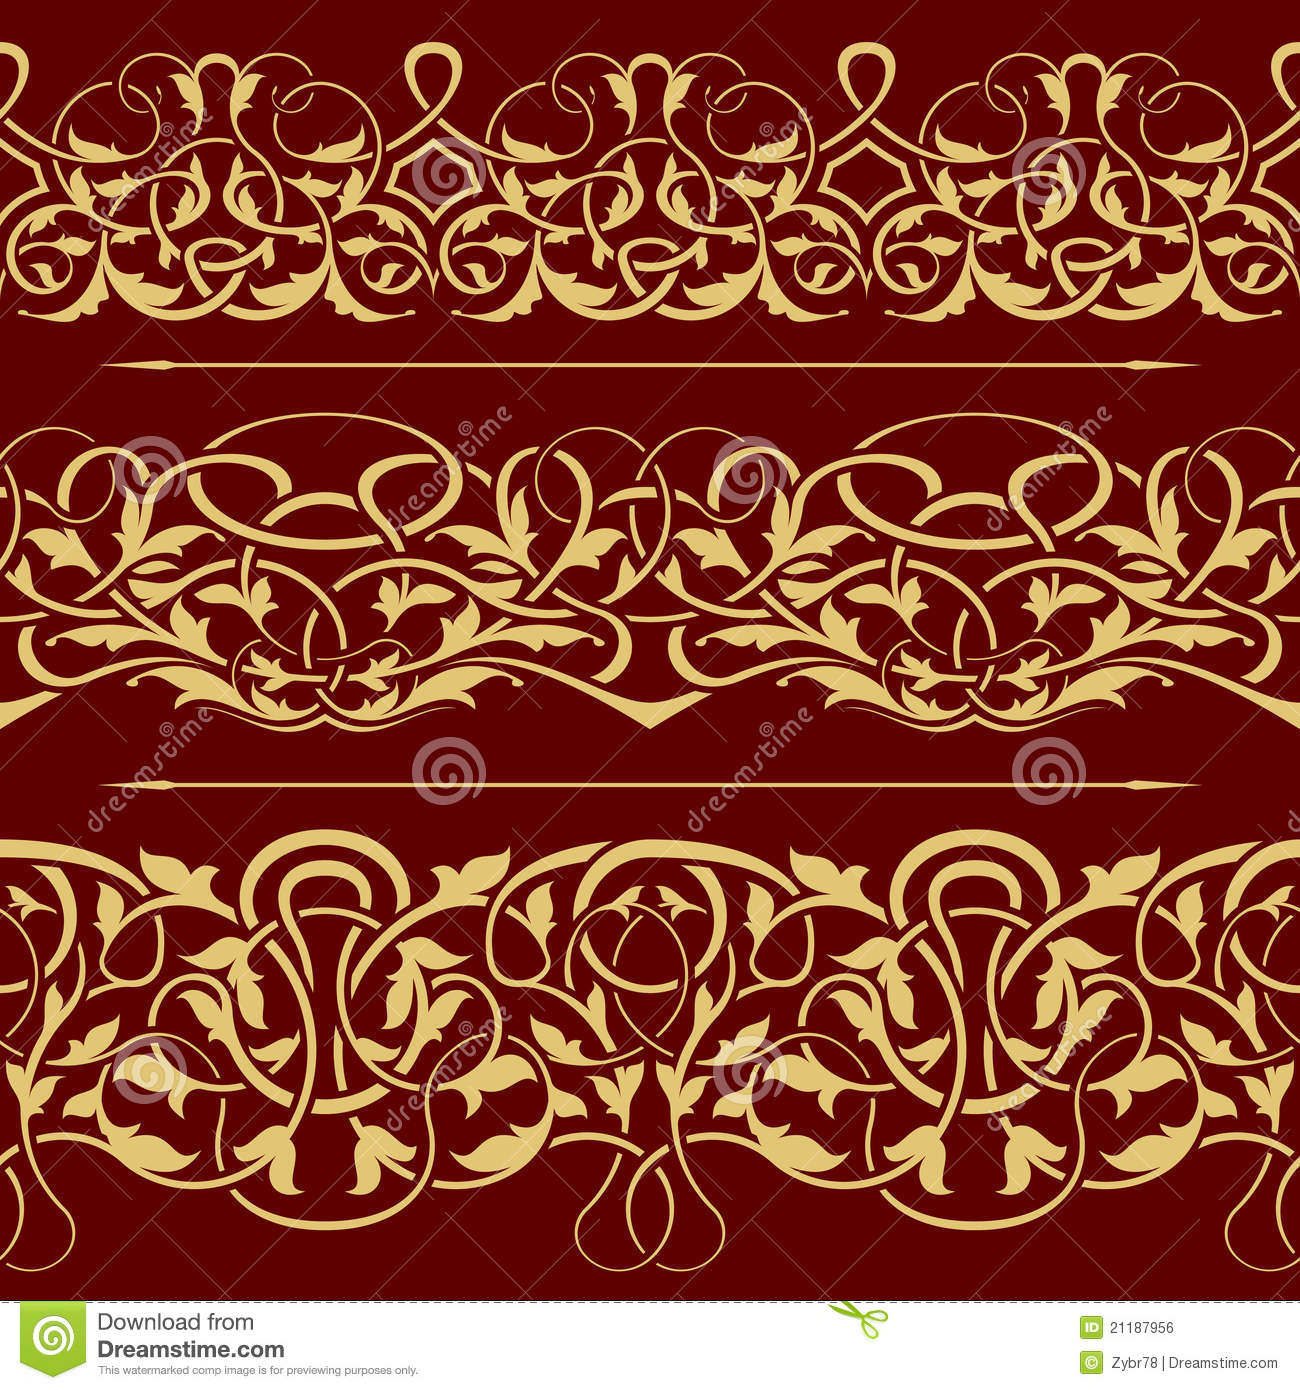 Collection of gold floral seamless border